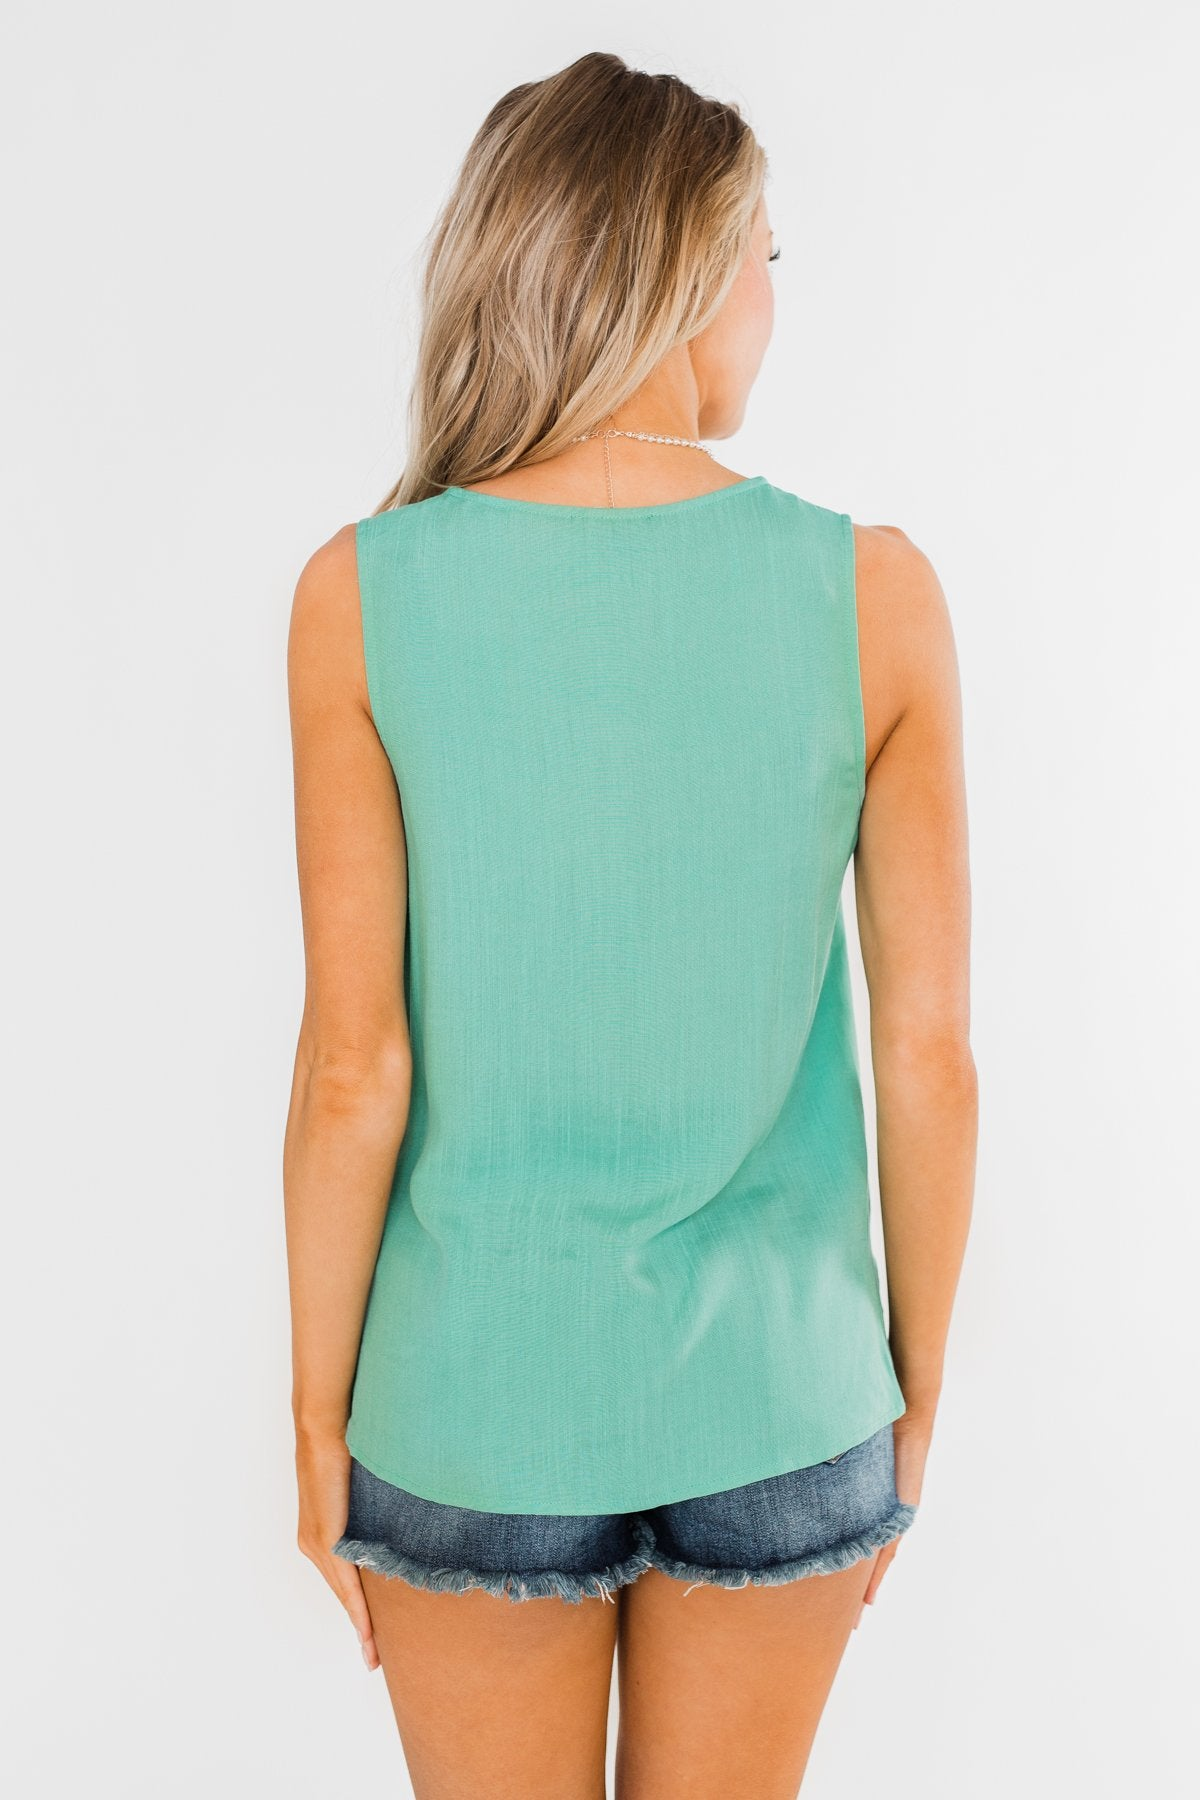 Meant To Be Mine Button Tank Top- Mint Blue